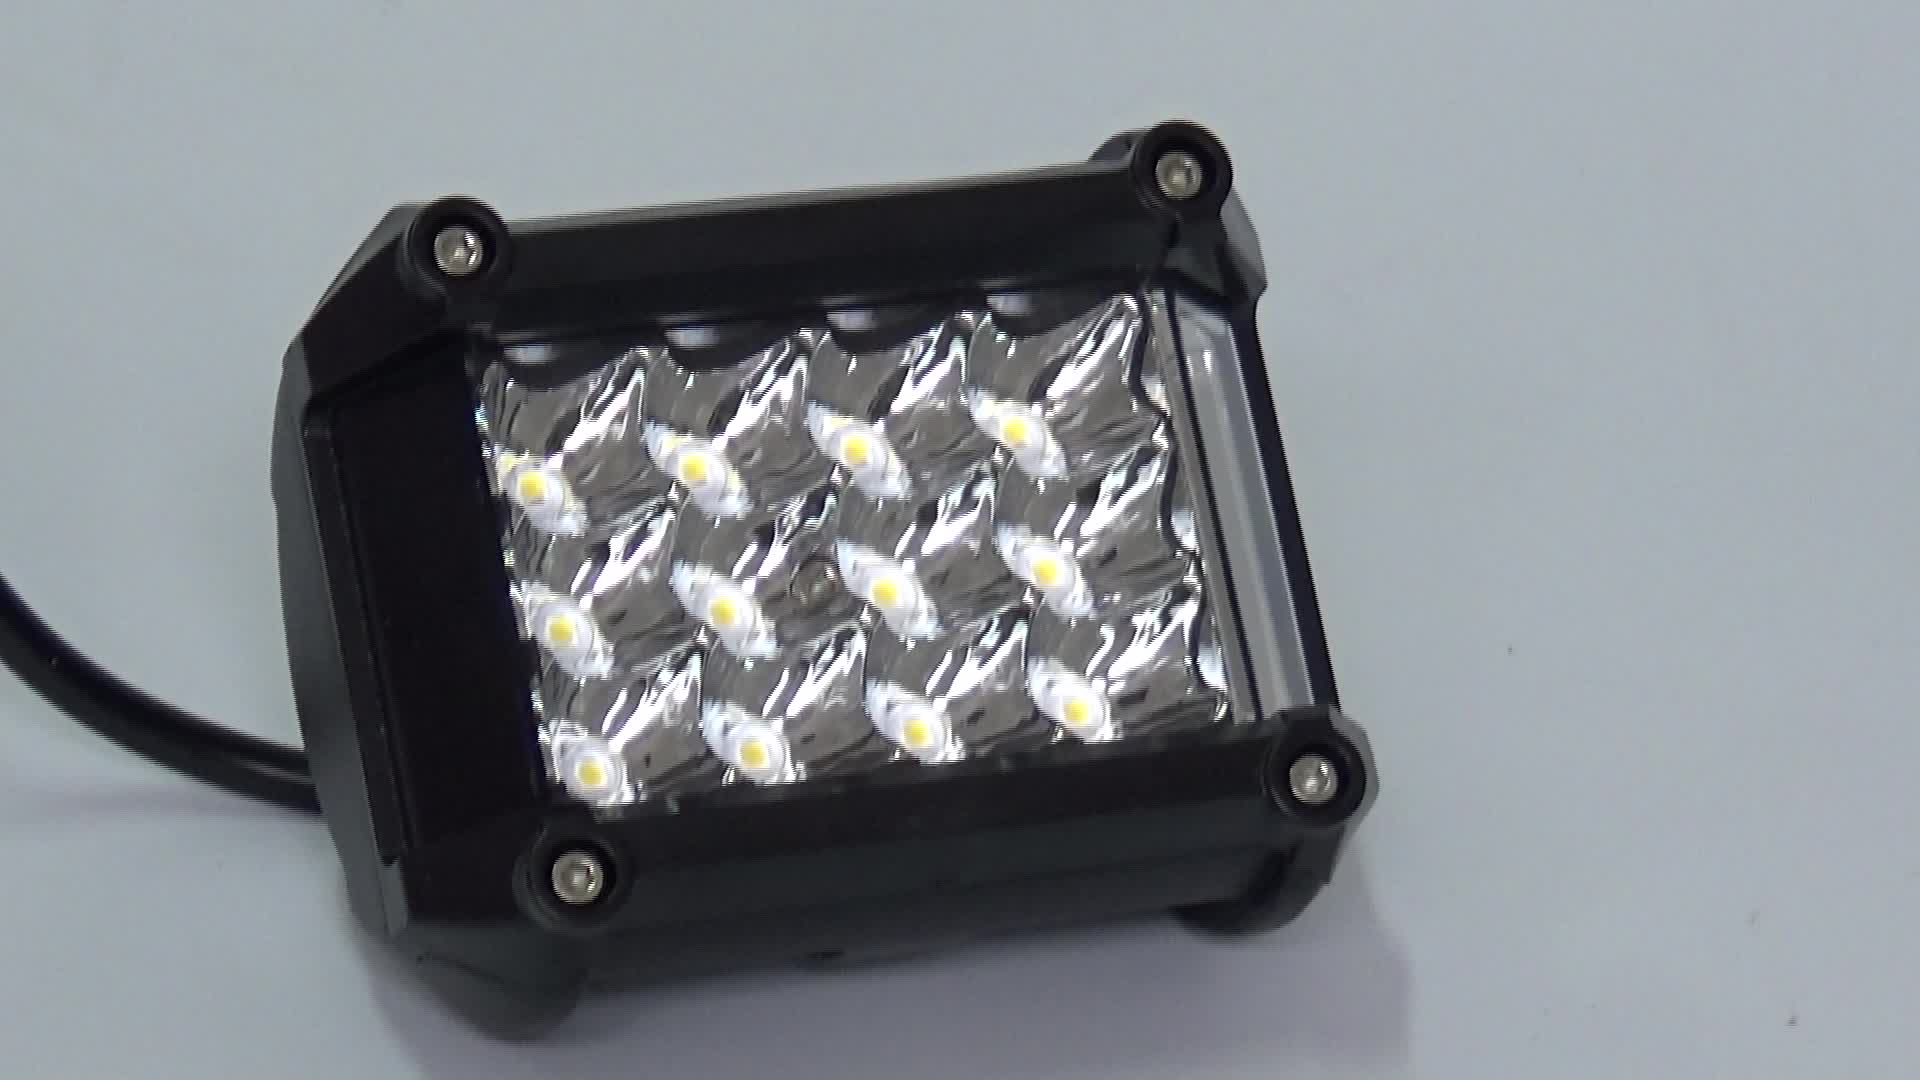 57W outdoor work black lights side marker trailer light stop lamp led truck